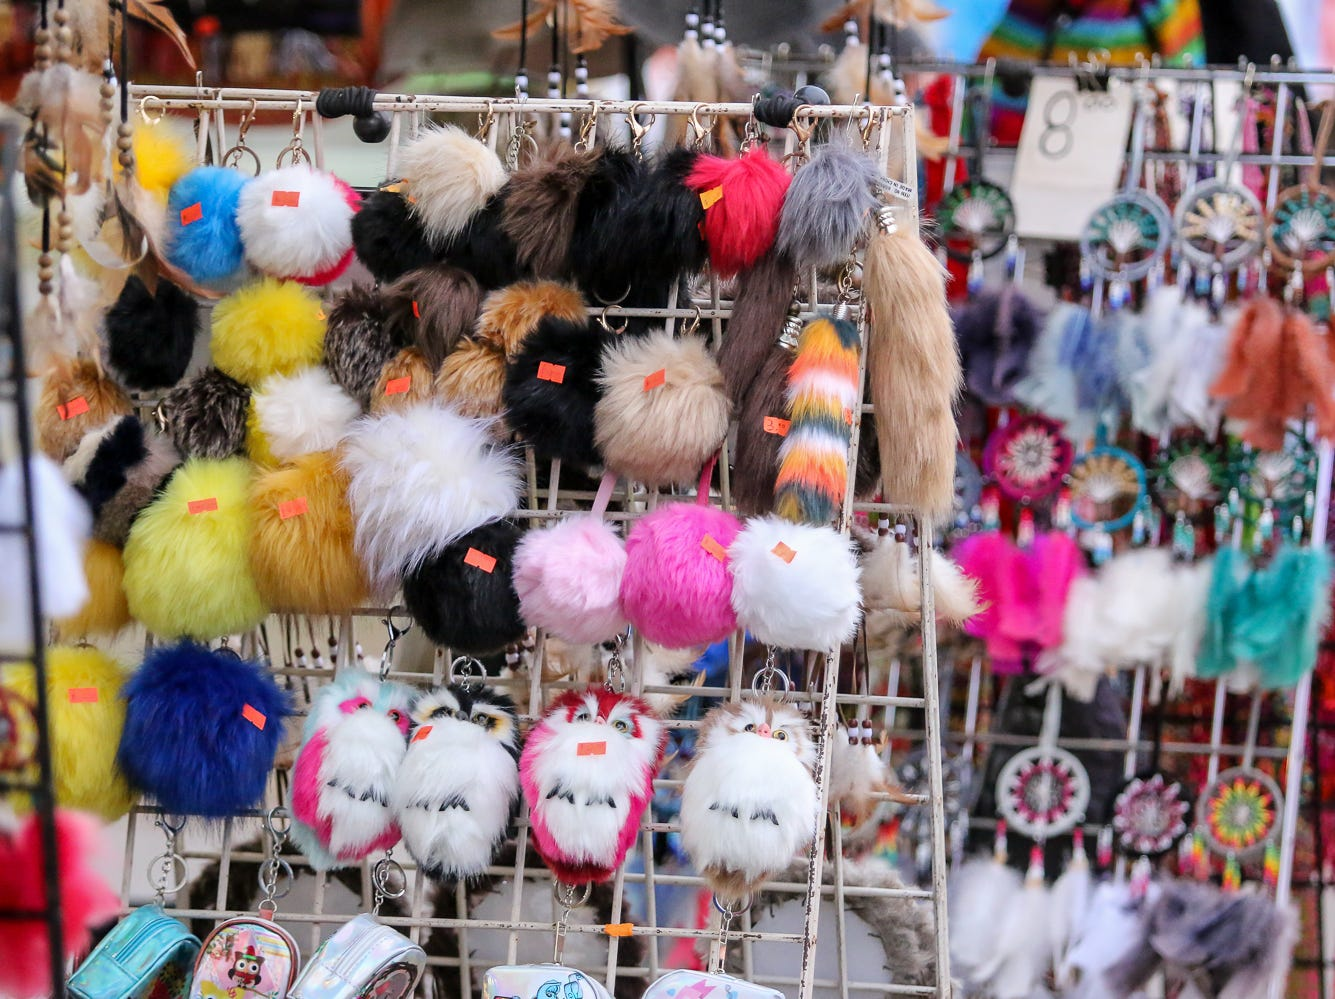 Some of the items for sale during the 84th annual Pensacola Interstate Fair on Monday, October 22, 2018.